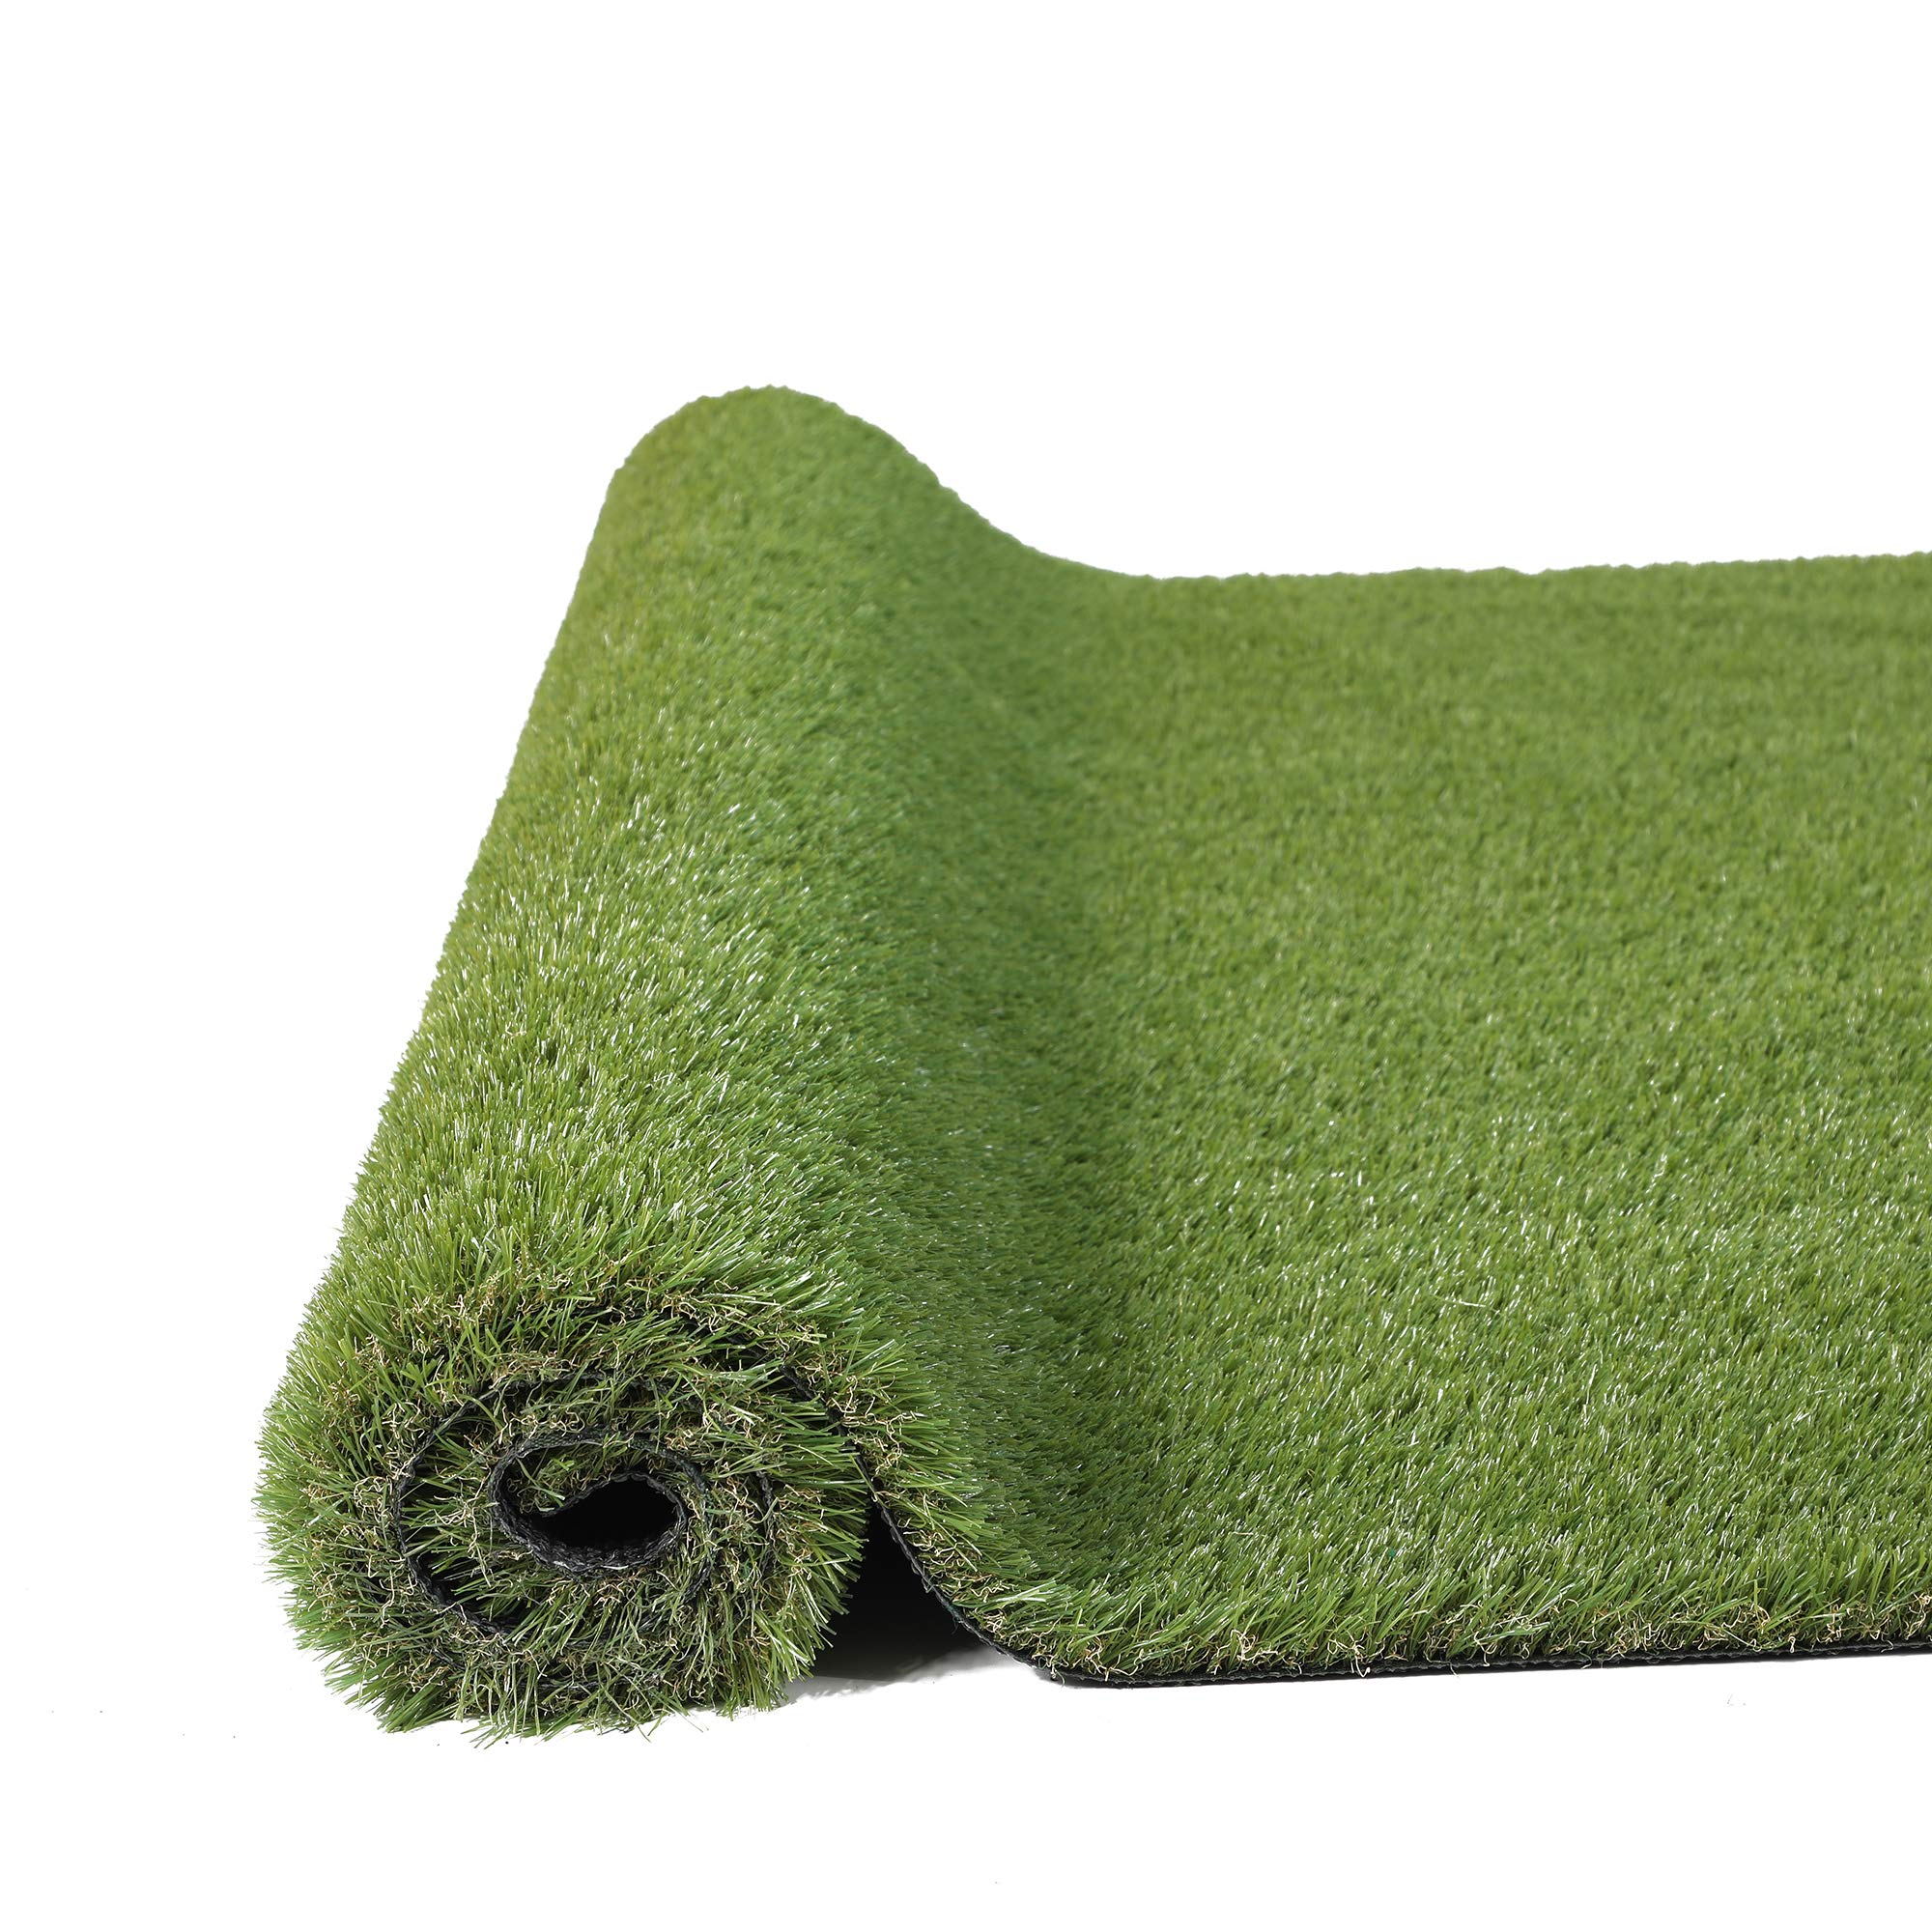 PHI VILLA Artificial Grass Area Rug, 40 in x 60 in, Perfect for Indoor/Outdoor Landscape